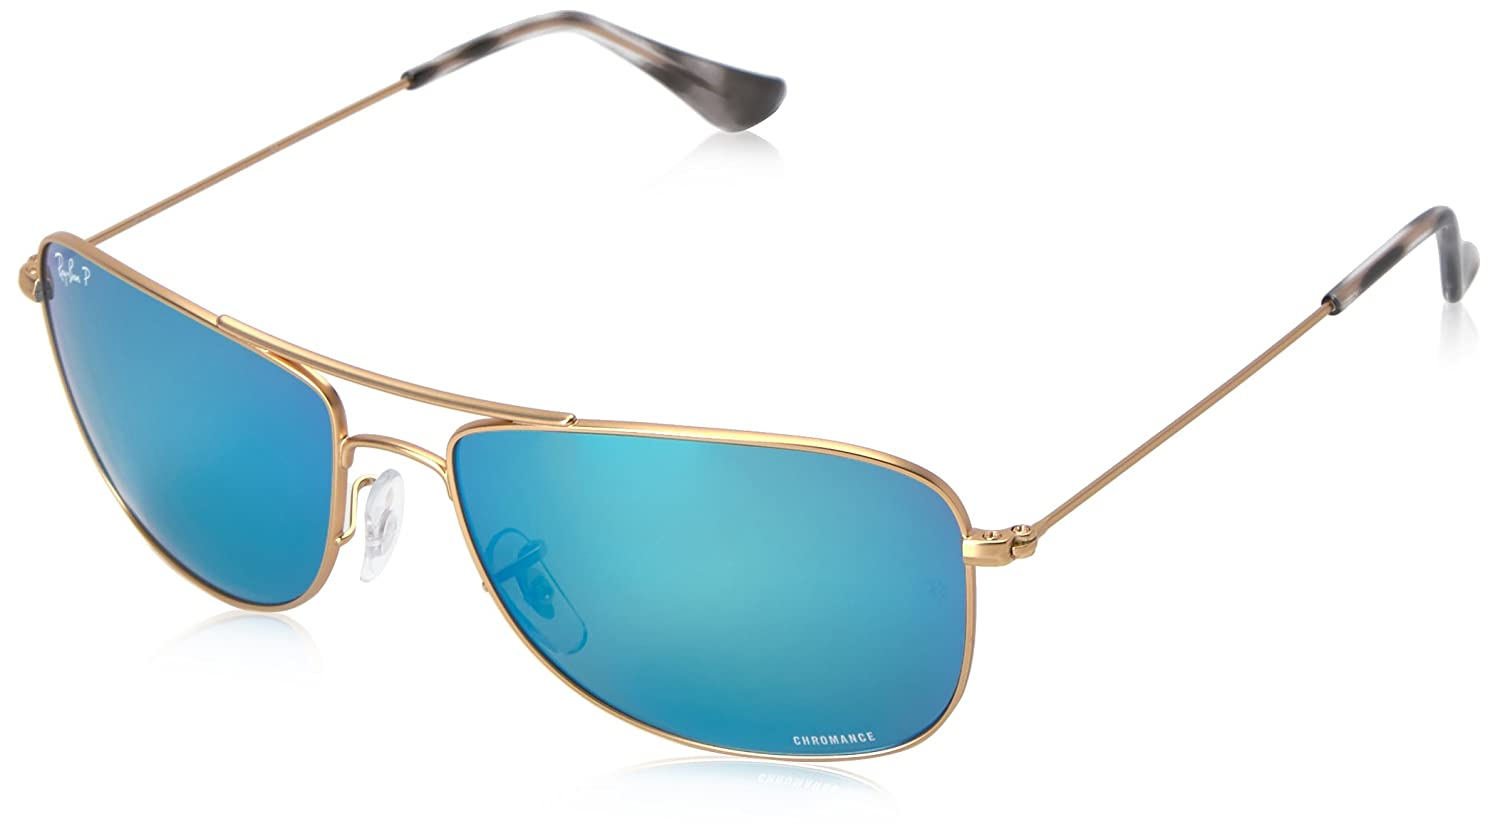 13004485c Amazon.com: Ray-Ban Men Metal Unisex Sunglass Polarized Aviator, Gold, 59 mm:  Clothing